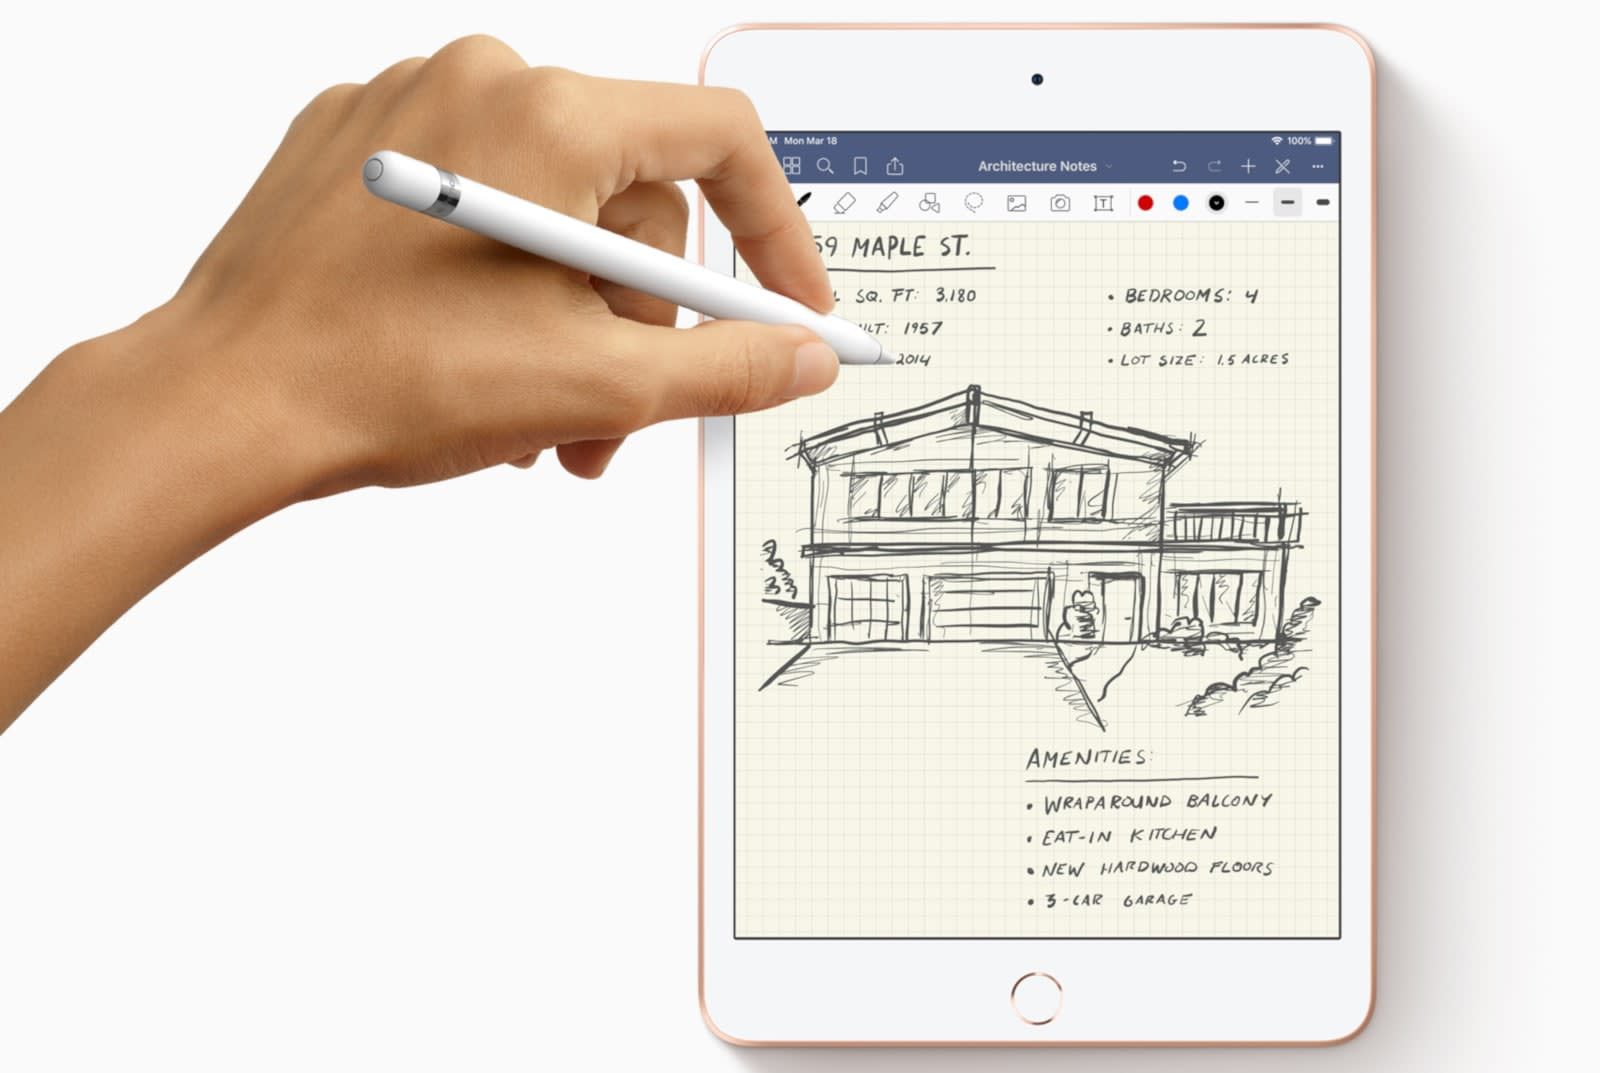 Apple's updated iPad Air and Mini support eSIMs